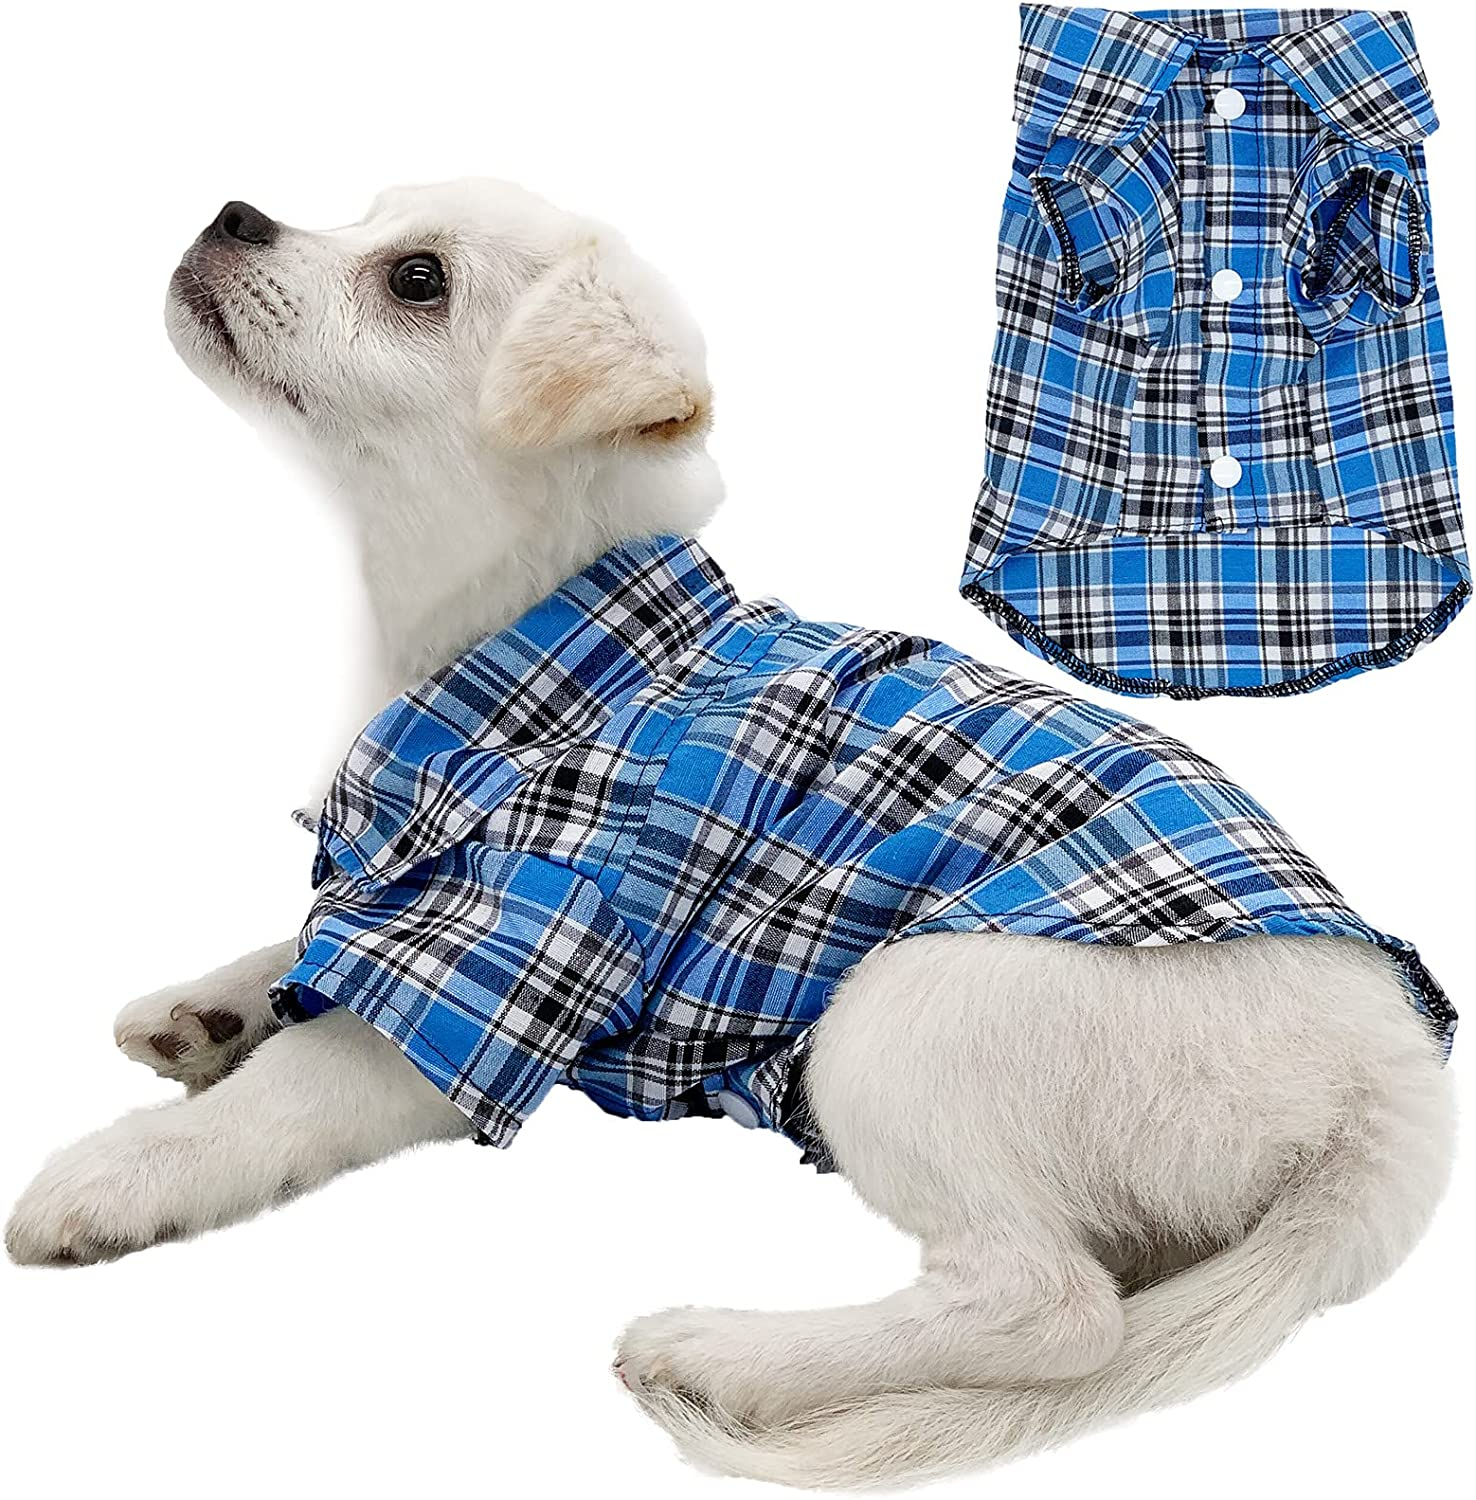 Ranking TOP4 Strangefly Dog Shirt Puppy Plaid Clothes T Polo Classic Grid New product! New type Pet